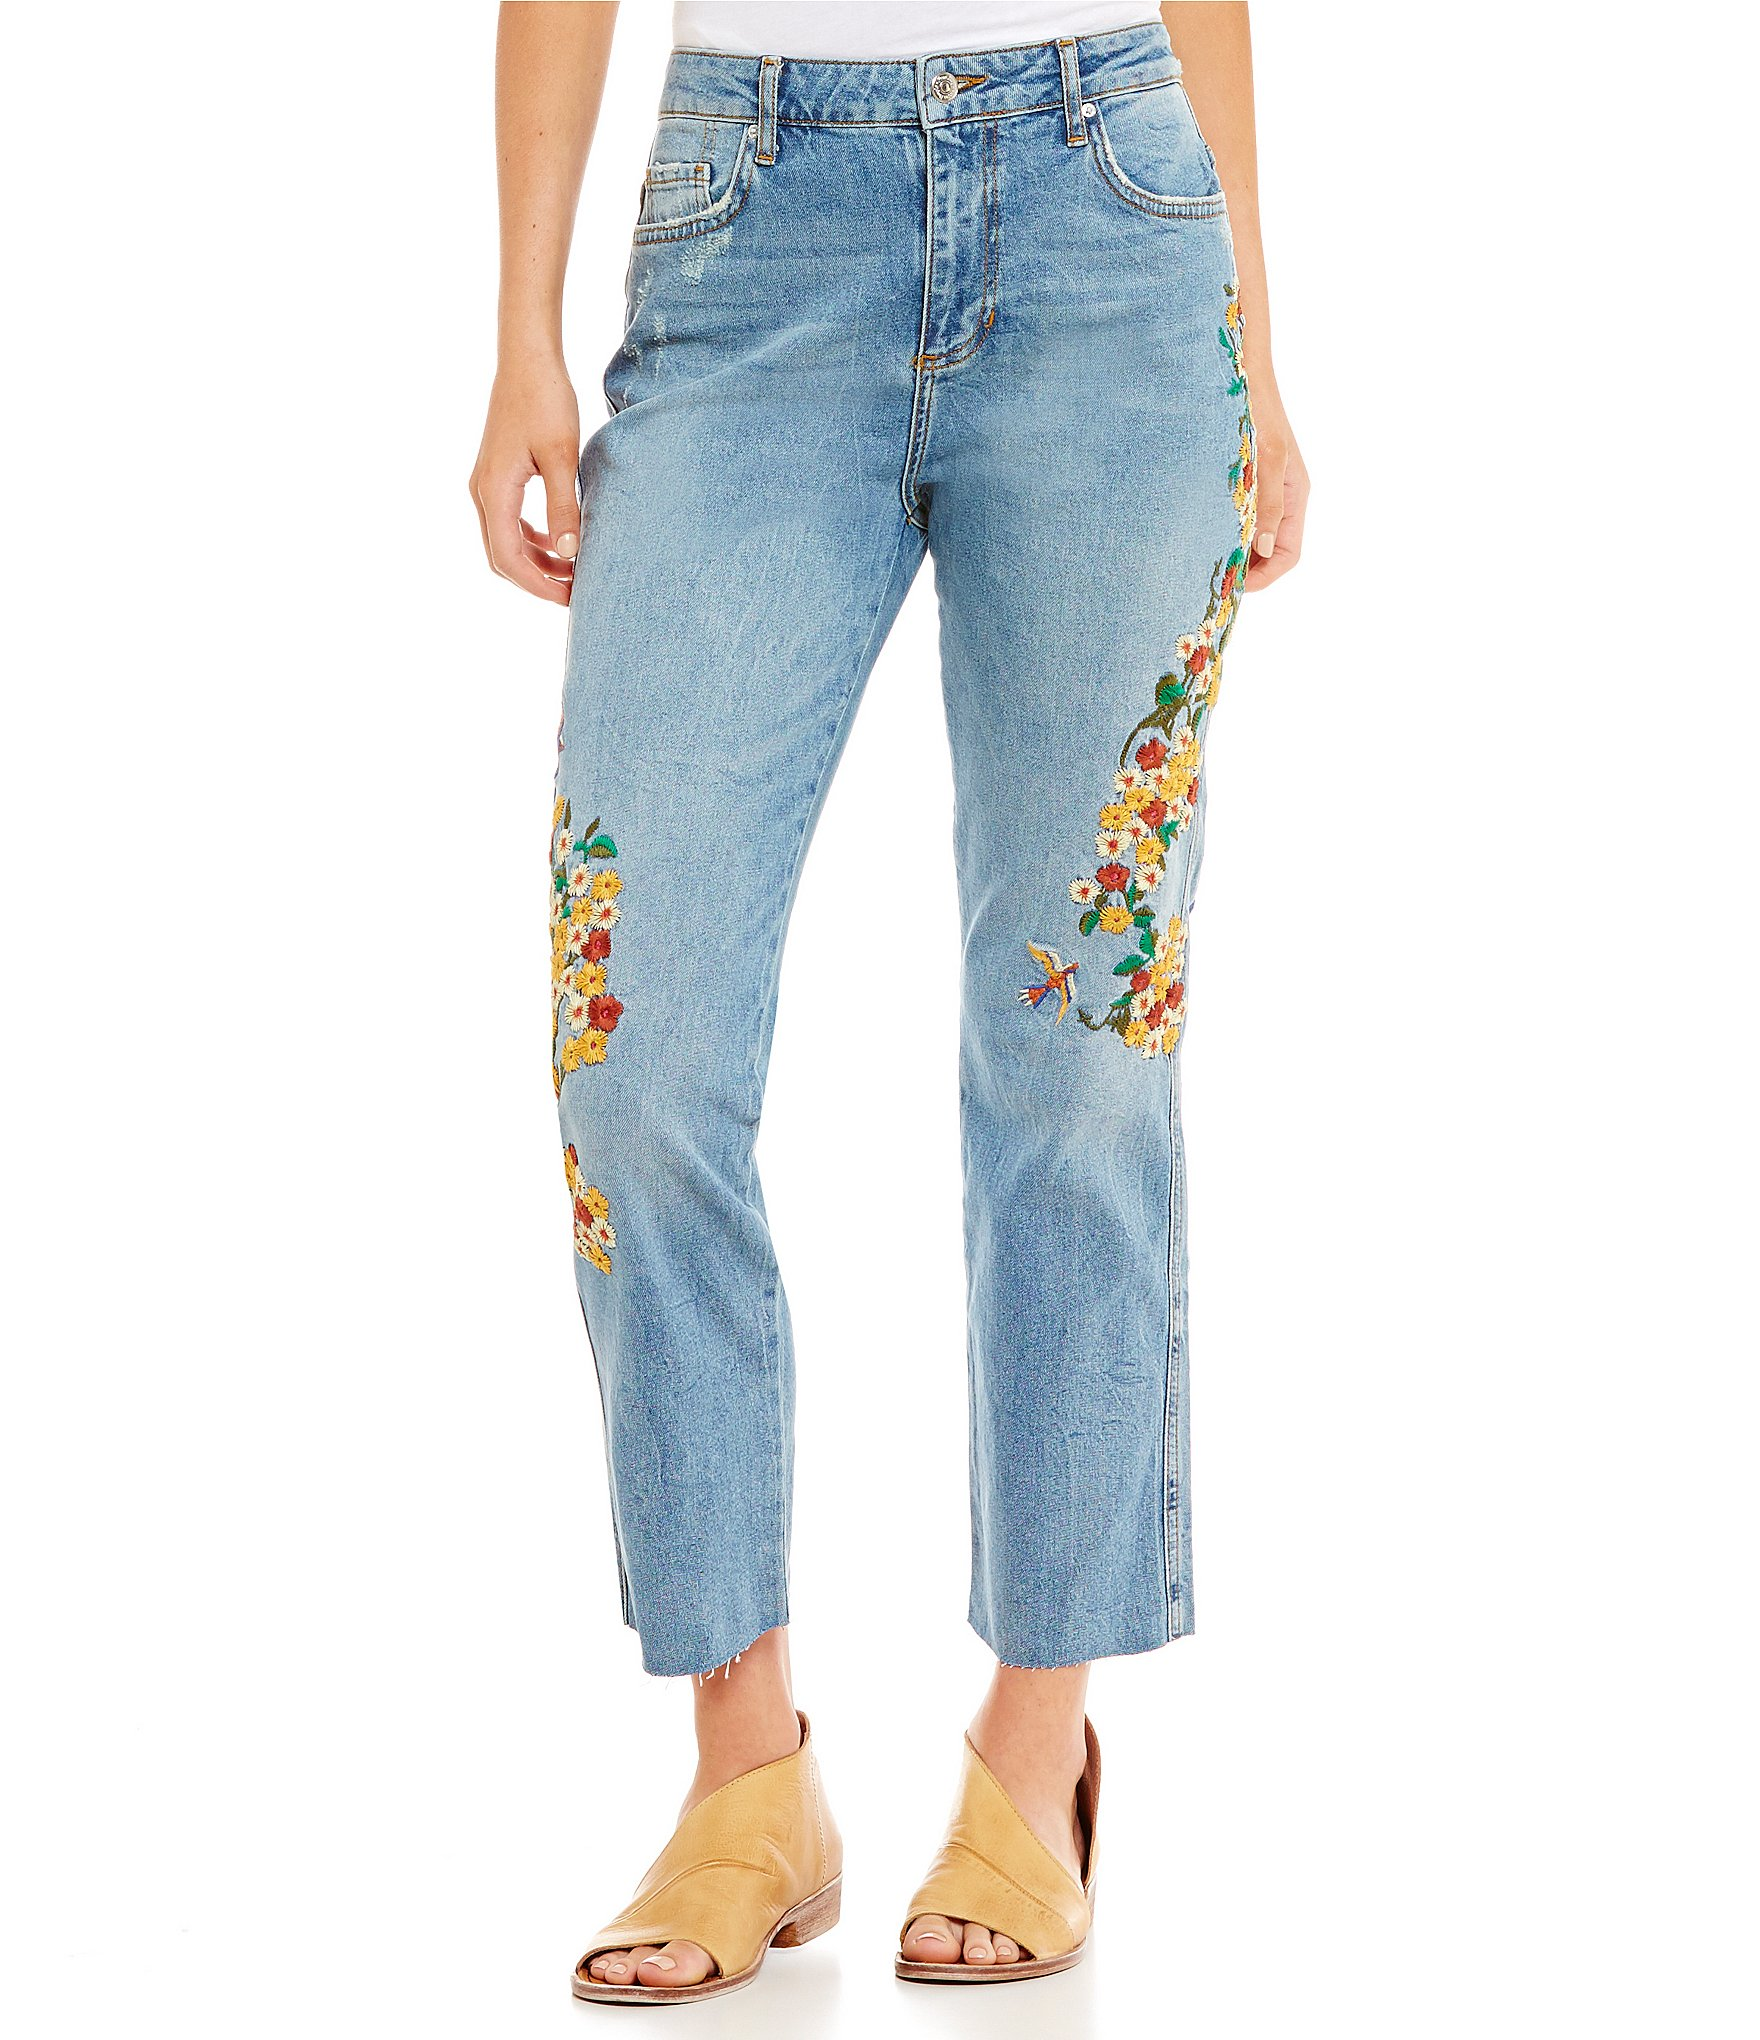 Free people floral embroidered girlfriend jeans dillards